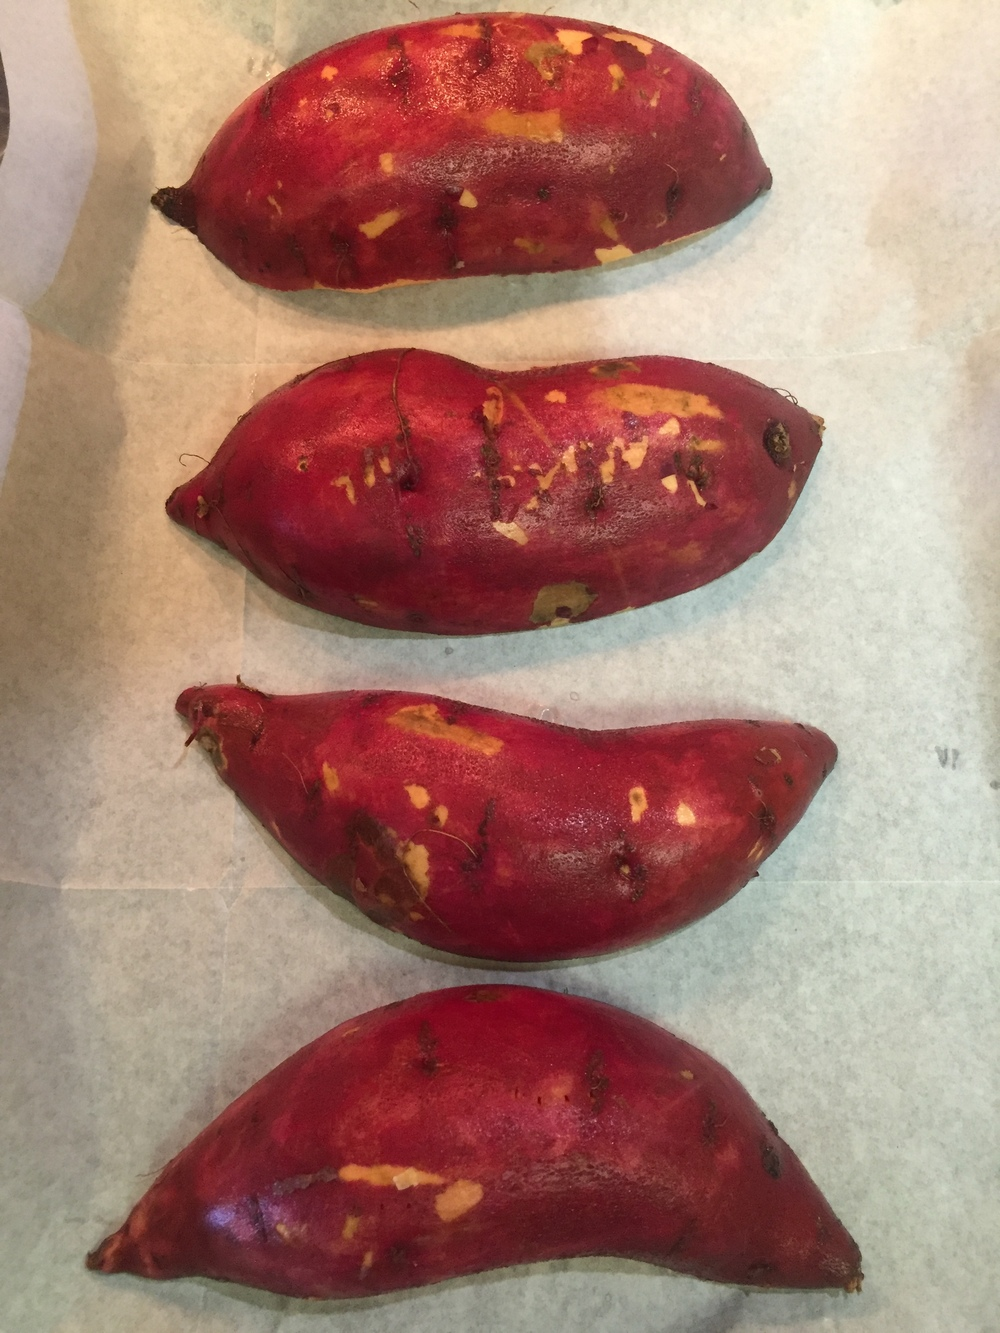 Oklahoma grown sweet potatoes ready for roasting.